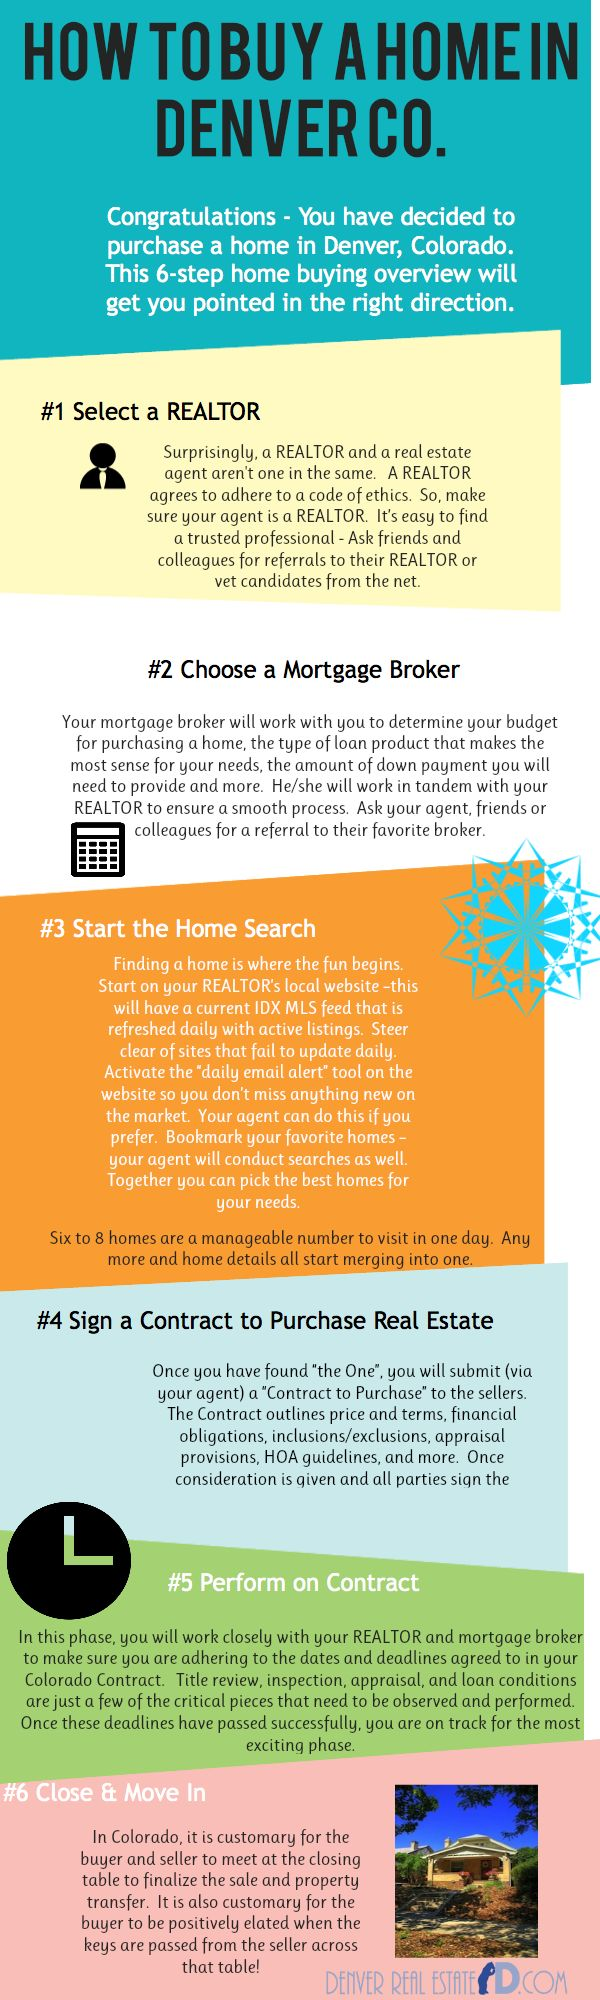 How To Buy A Home In Denver Co Infographic